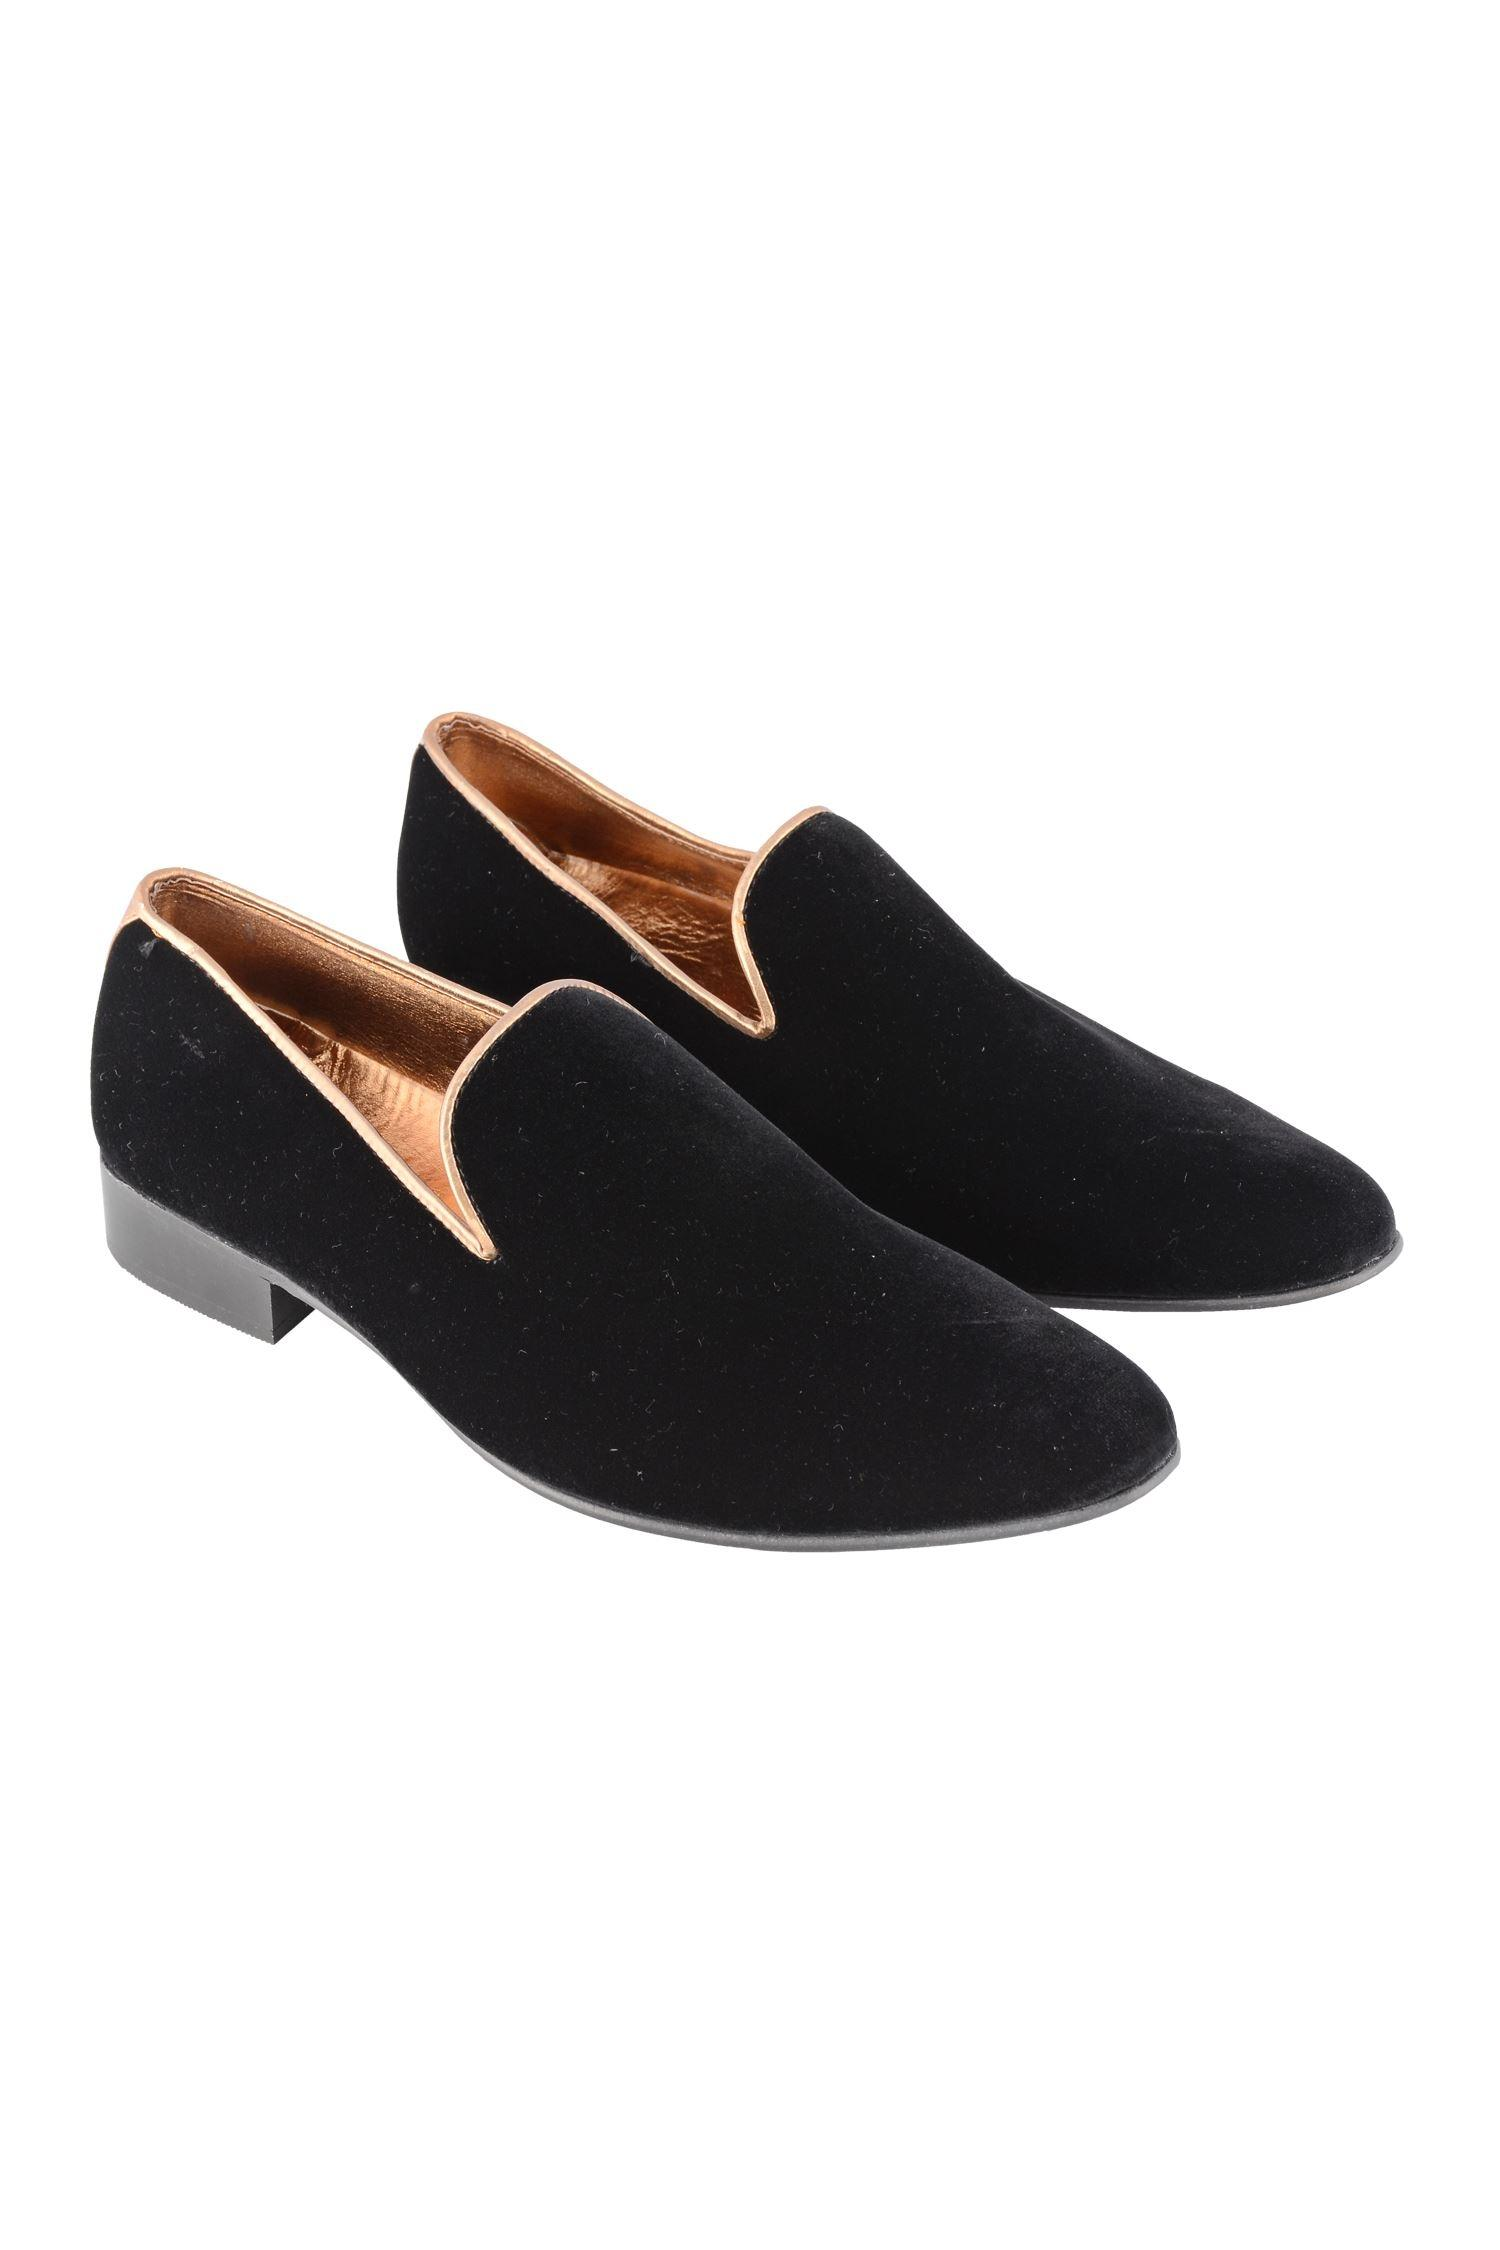 Black loafers with gold piping